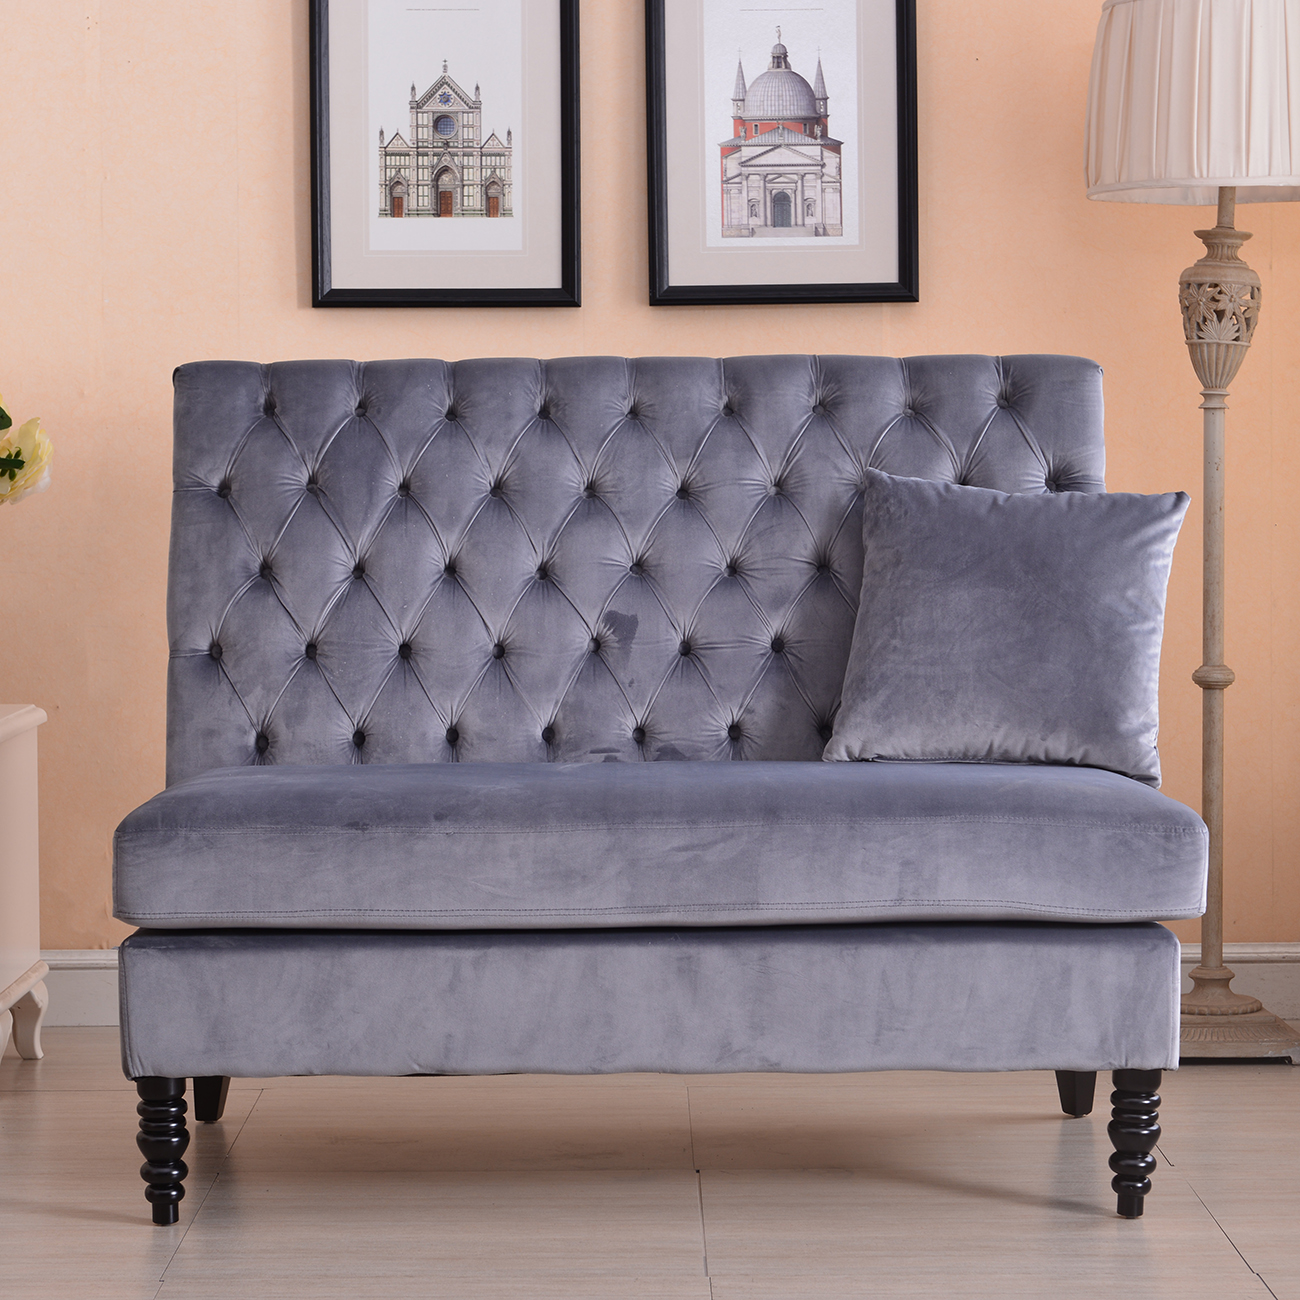 New modern tufted settee bedroom bench sofa high back cushion seat fabric velvet ebay Bench sofa